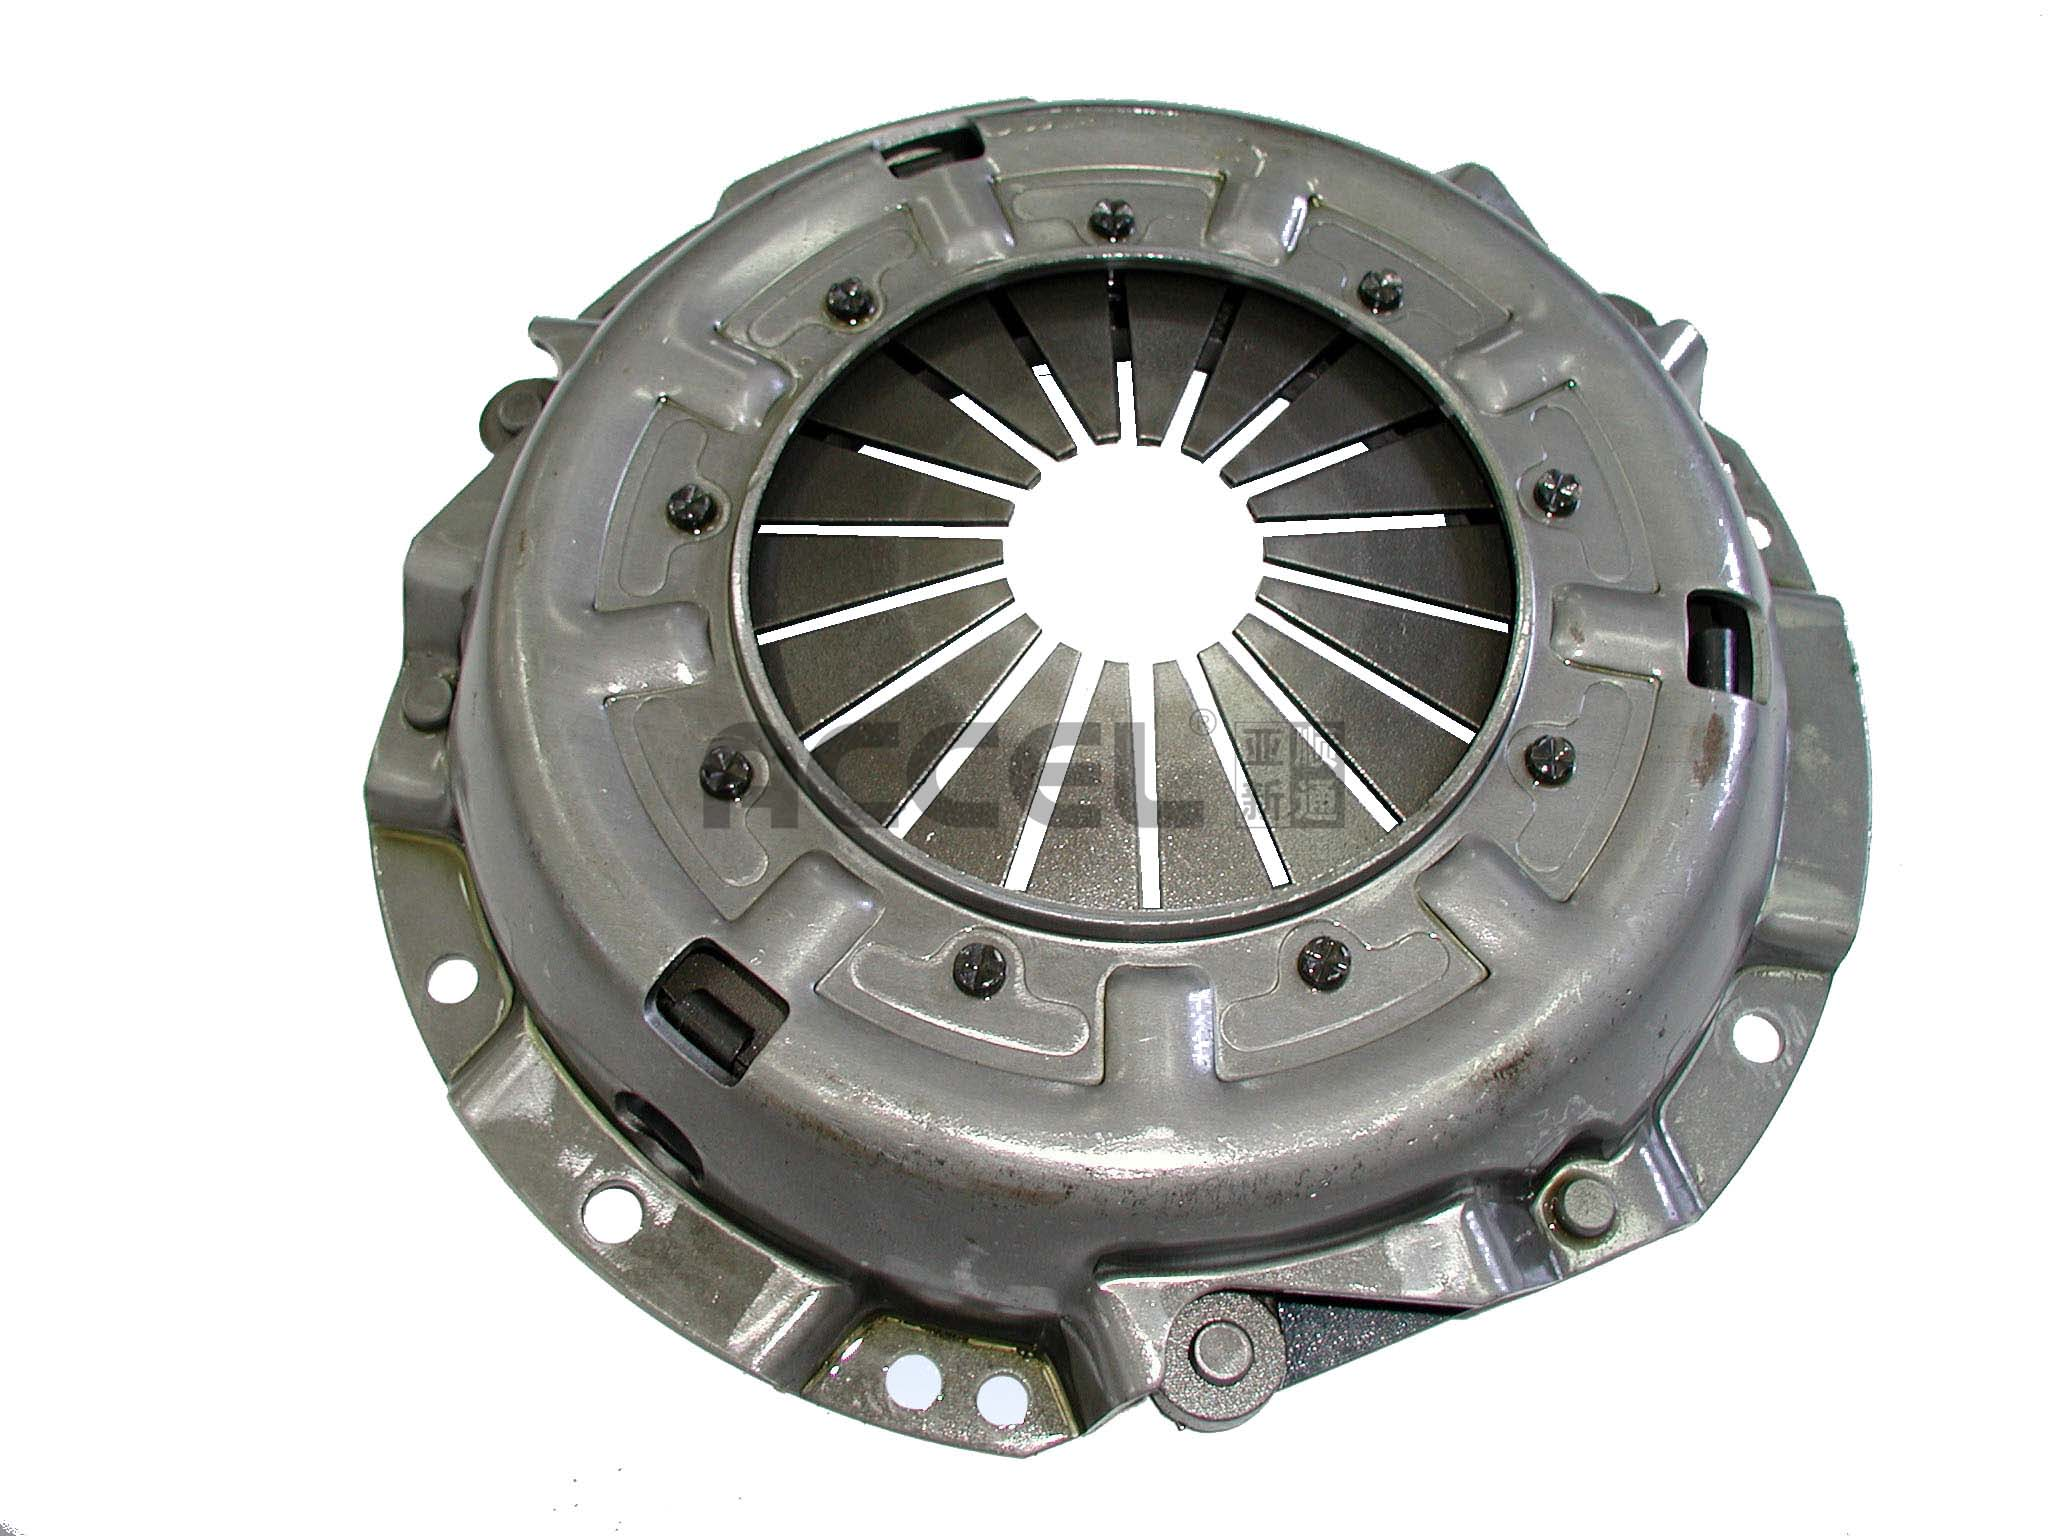 Clutch Cover/OE:31210-36029/225*150*264/CTY-001/TOYOTA/LY125/CT-045